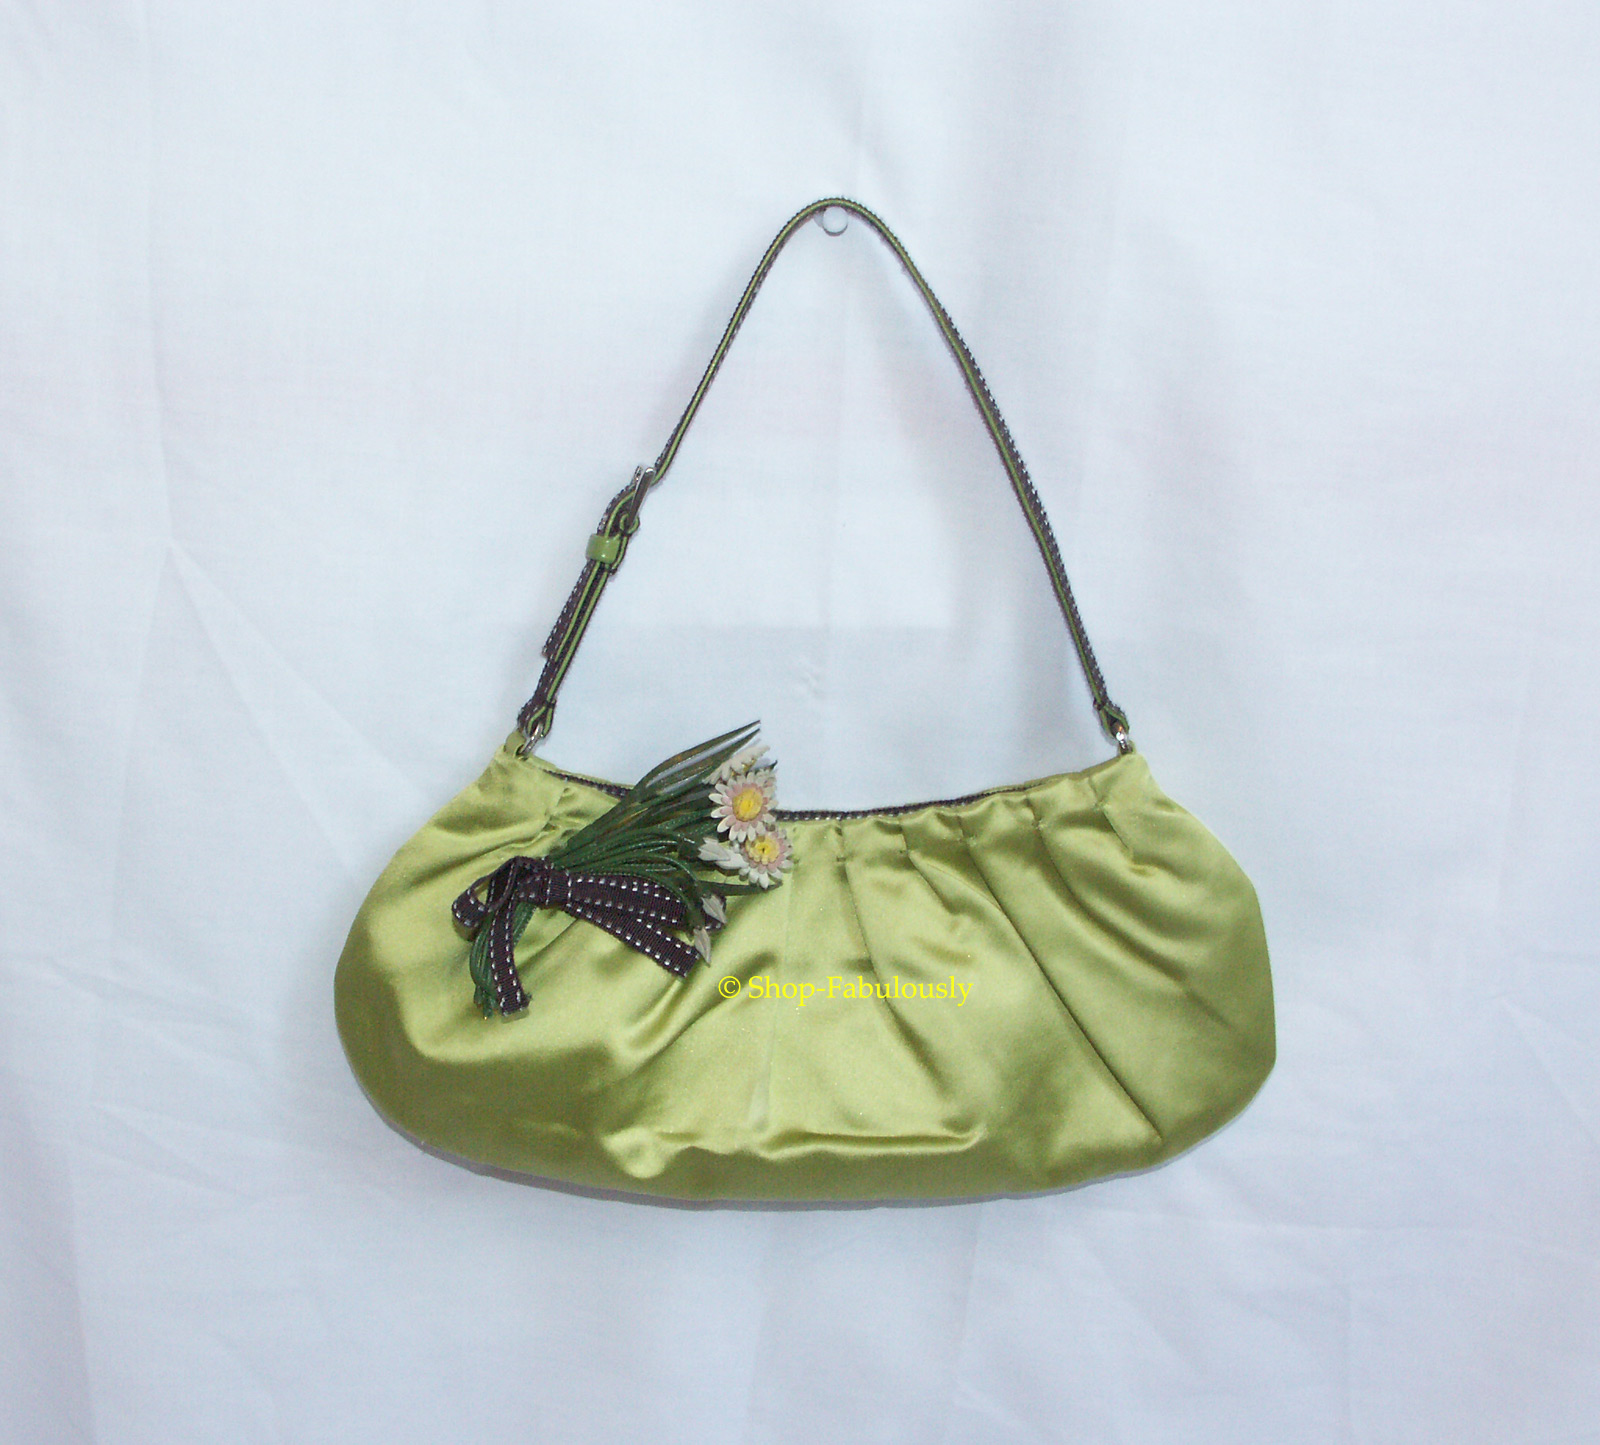 ostrich prada bag - Leather with Satin Flower Clutch �� Crafthubs